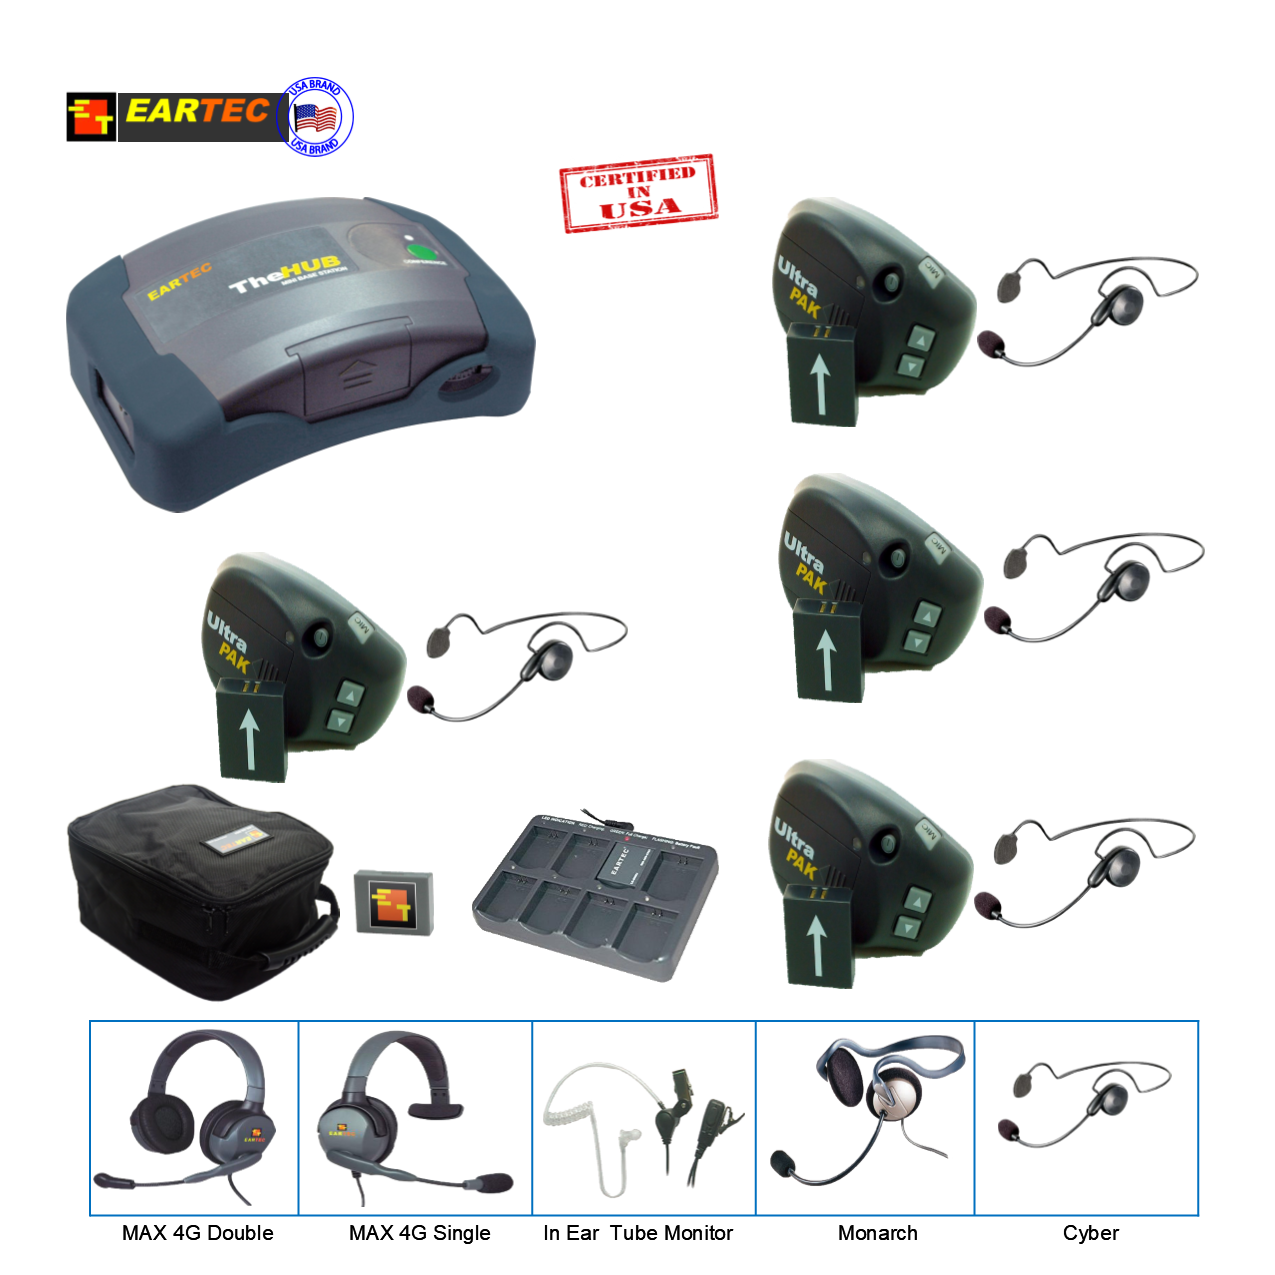 Eartec UPCYB4 Ultrapak & Hub 4Pers W/ 4 Cyber Headset Intercom Systems Eartec